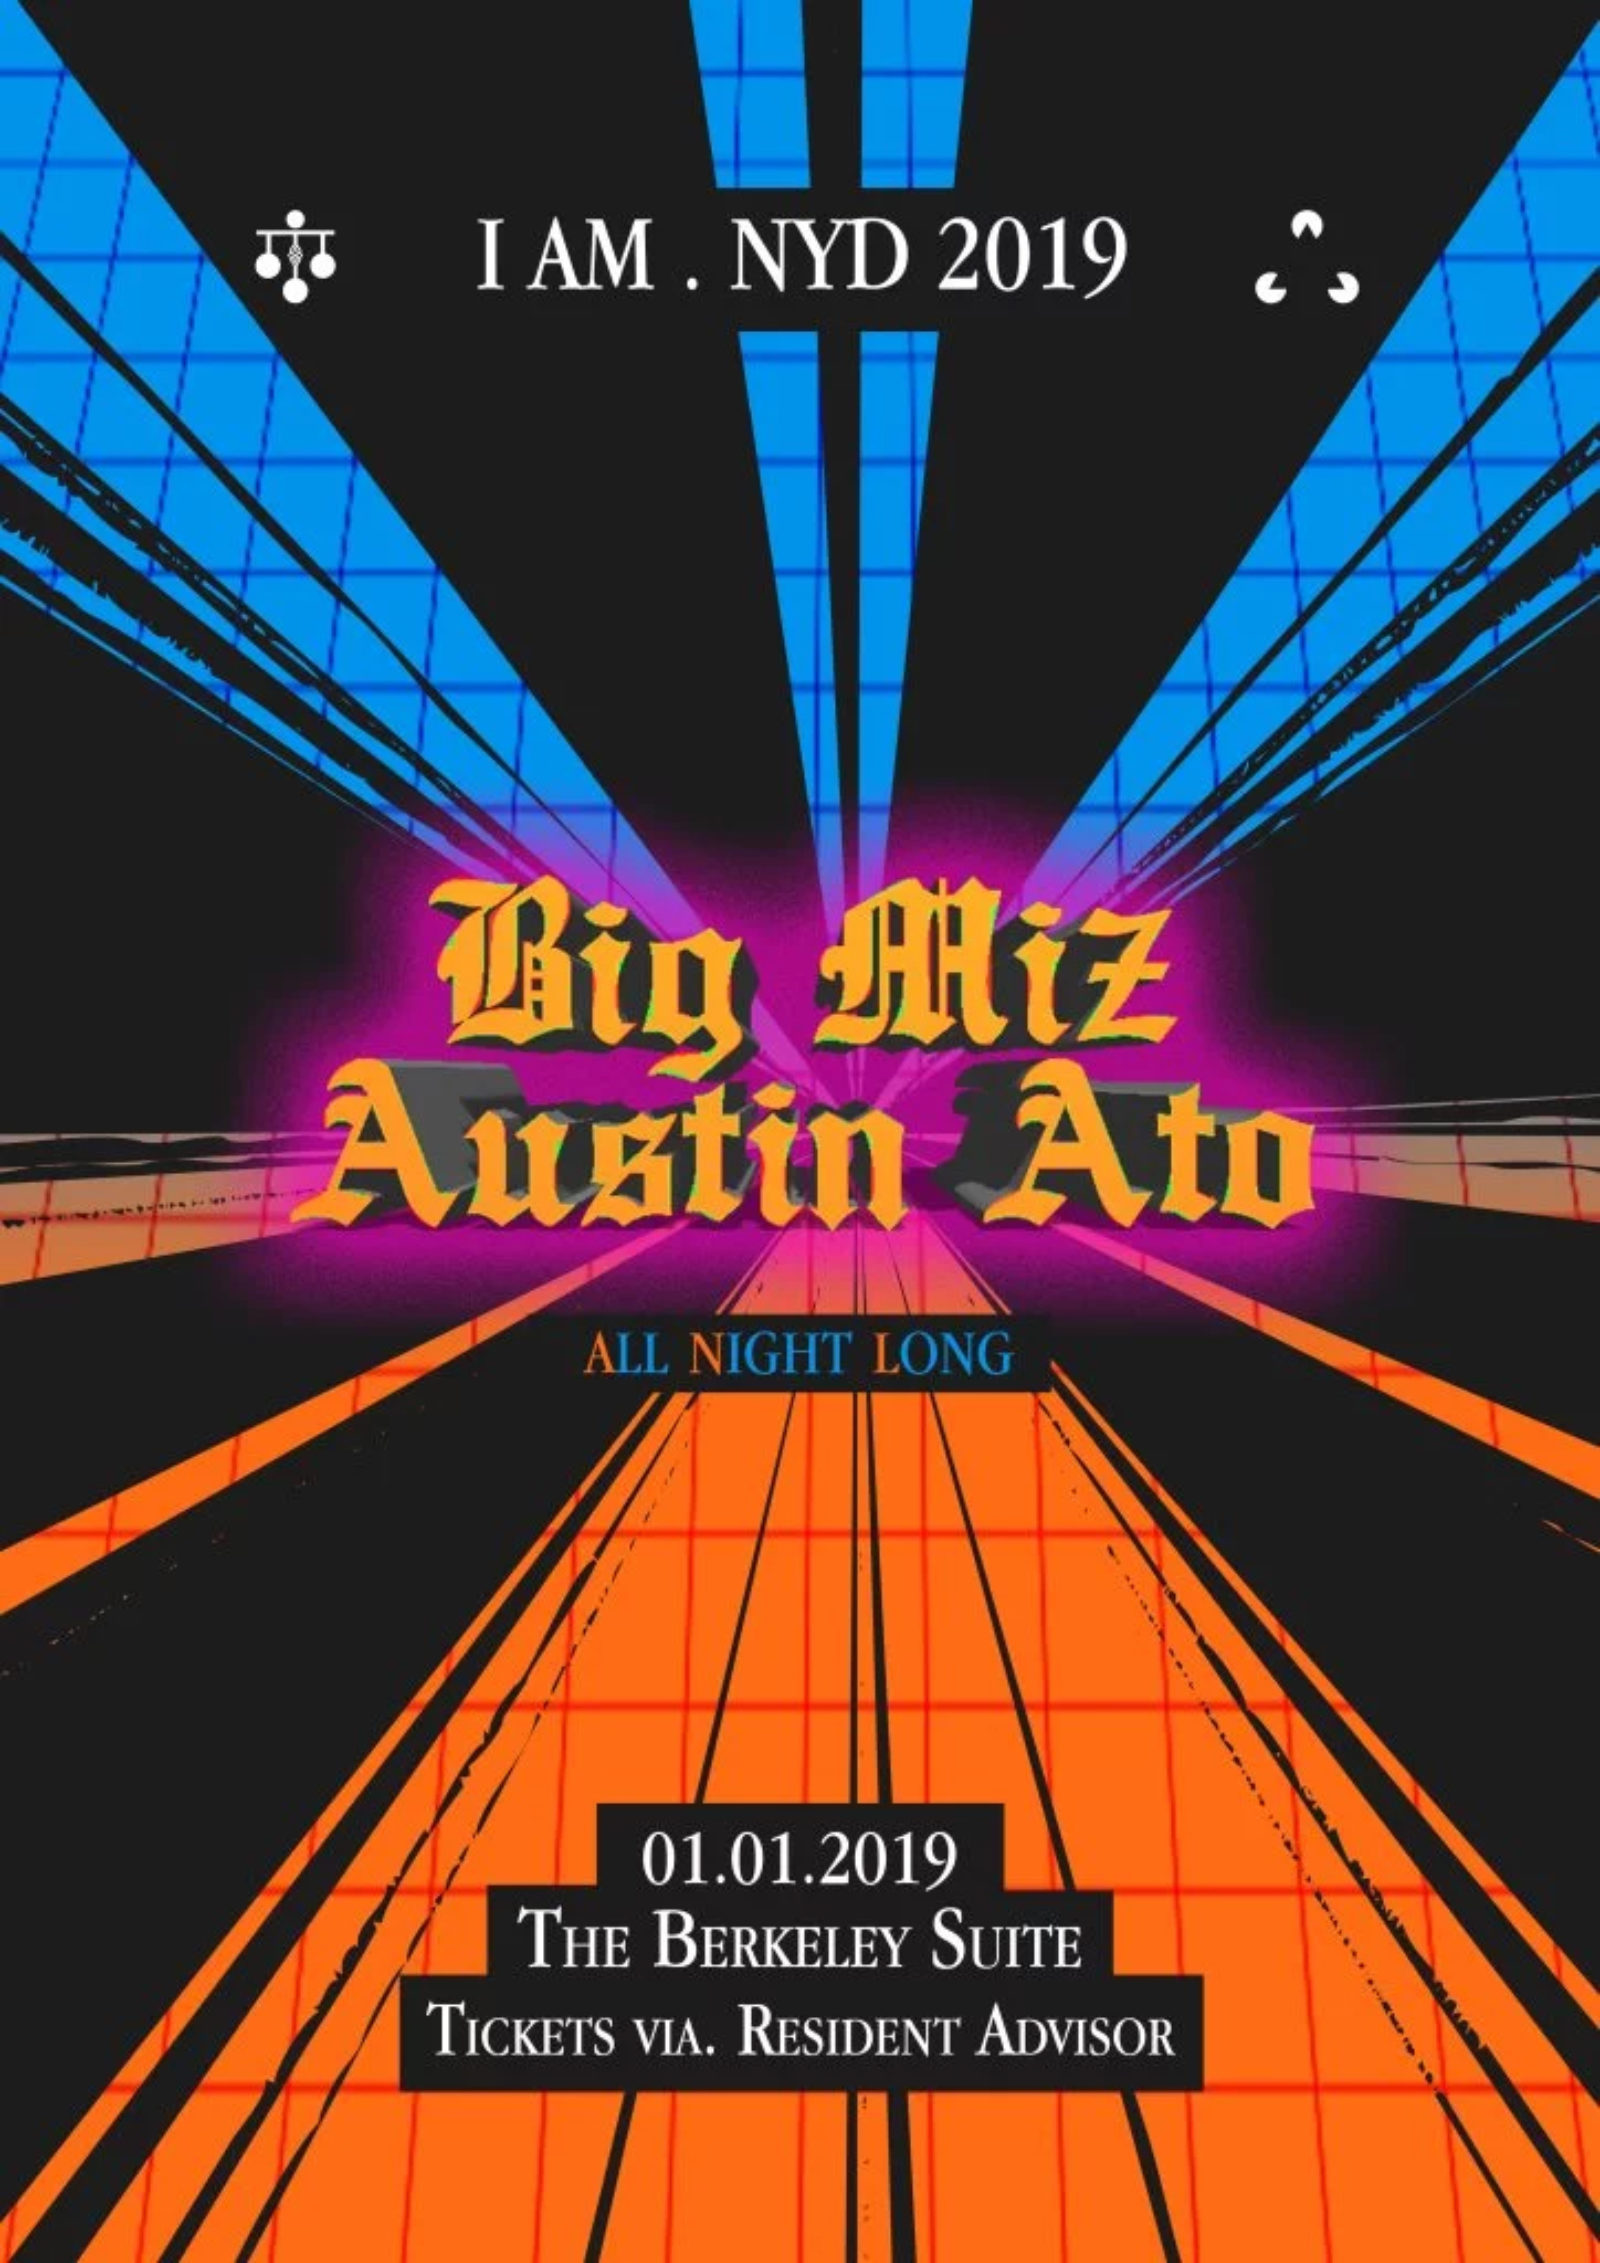 I AM NYD - Big Miz & Austin Ato